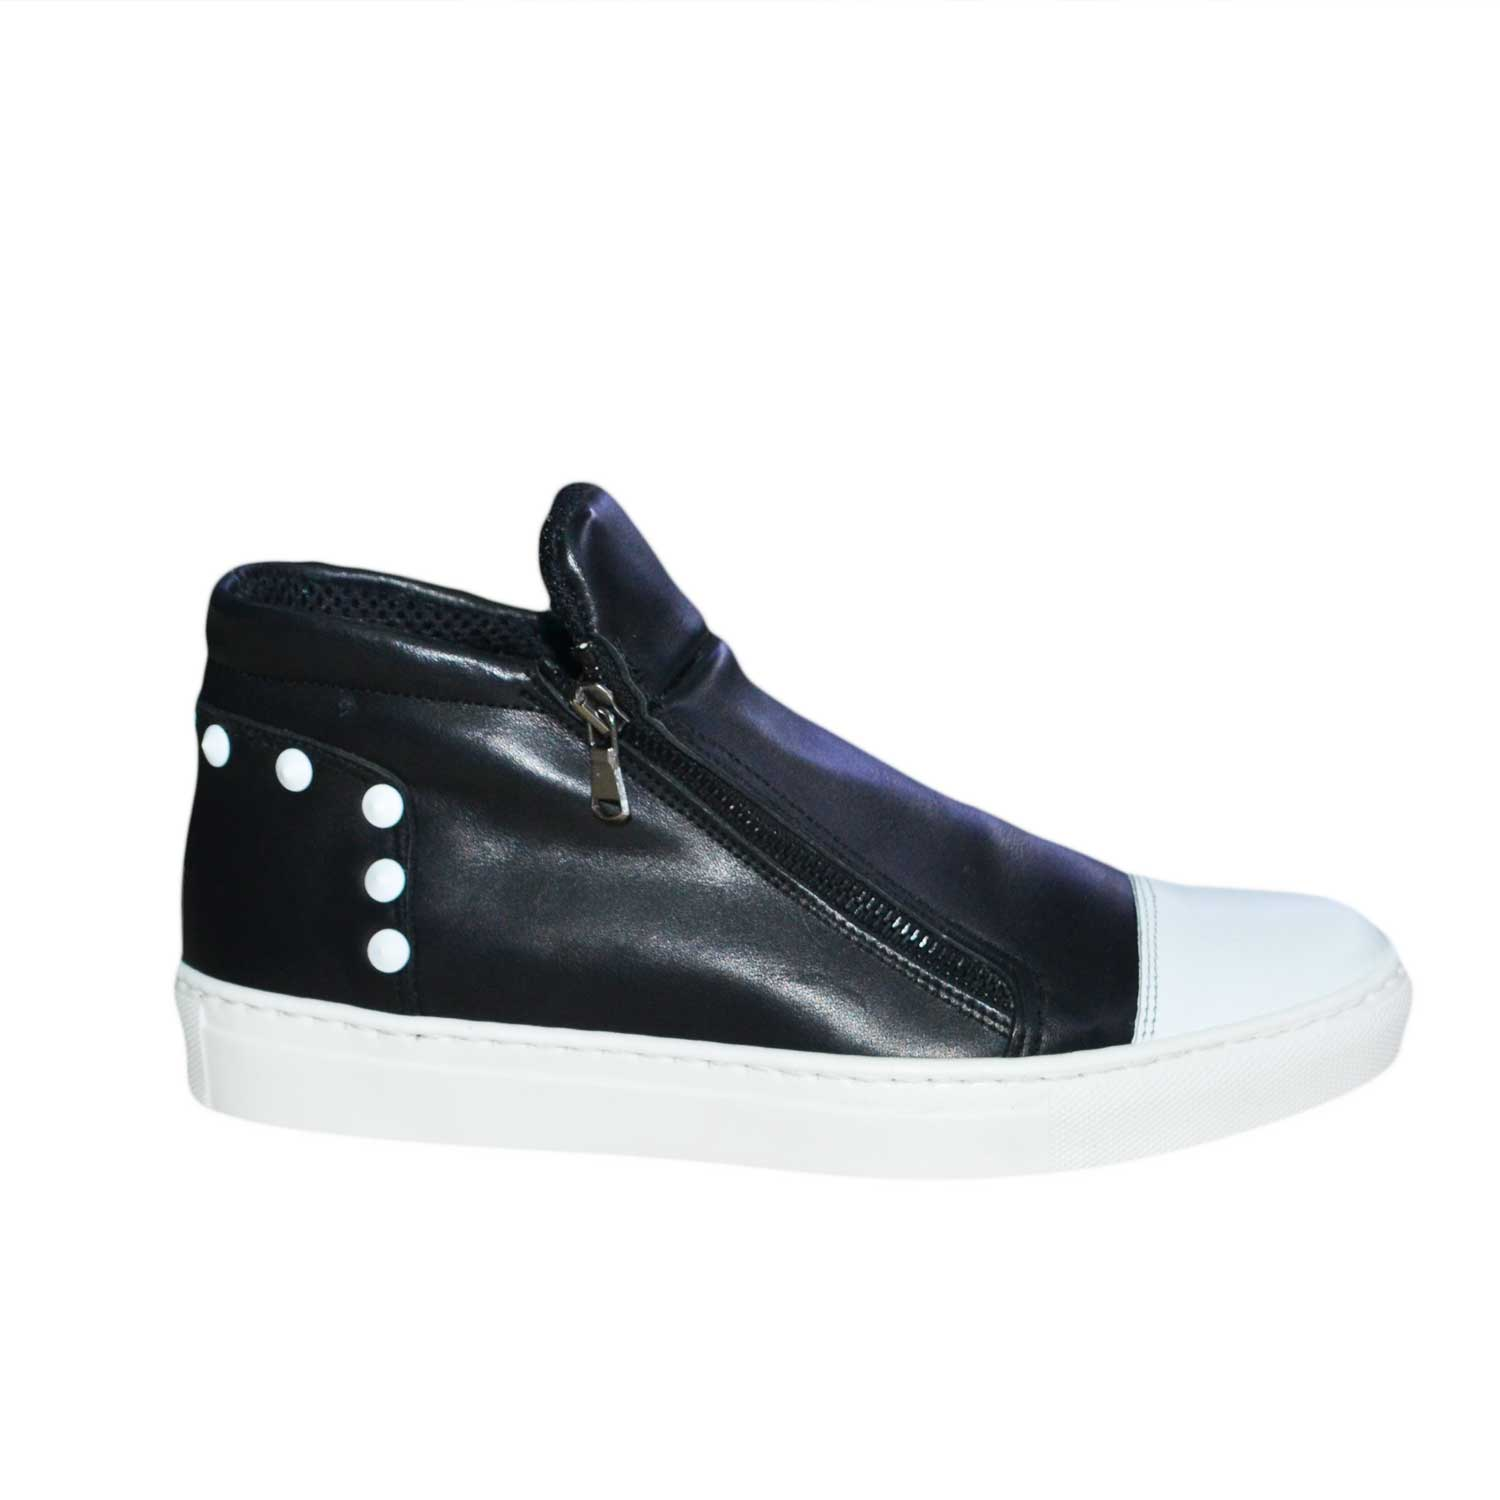 Sneakers bassa vera pelle due zip senza lacci made in italy borchie.